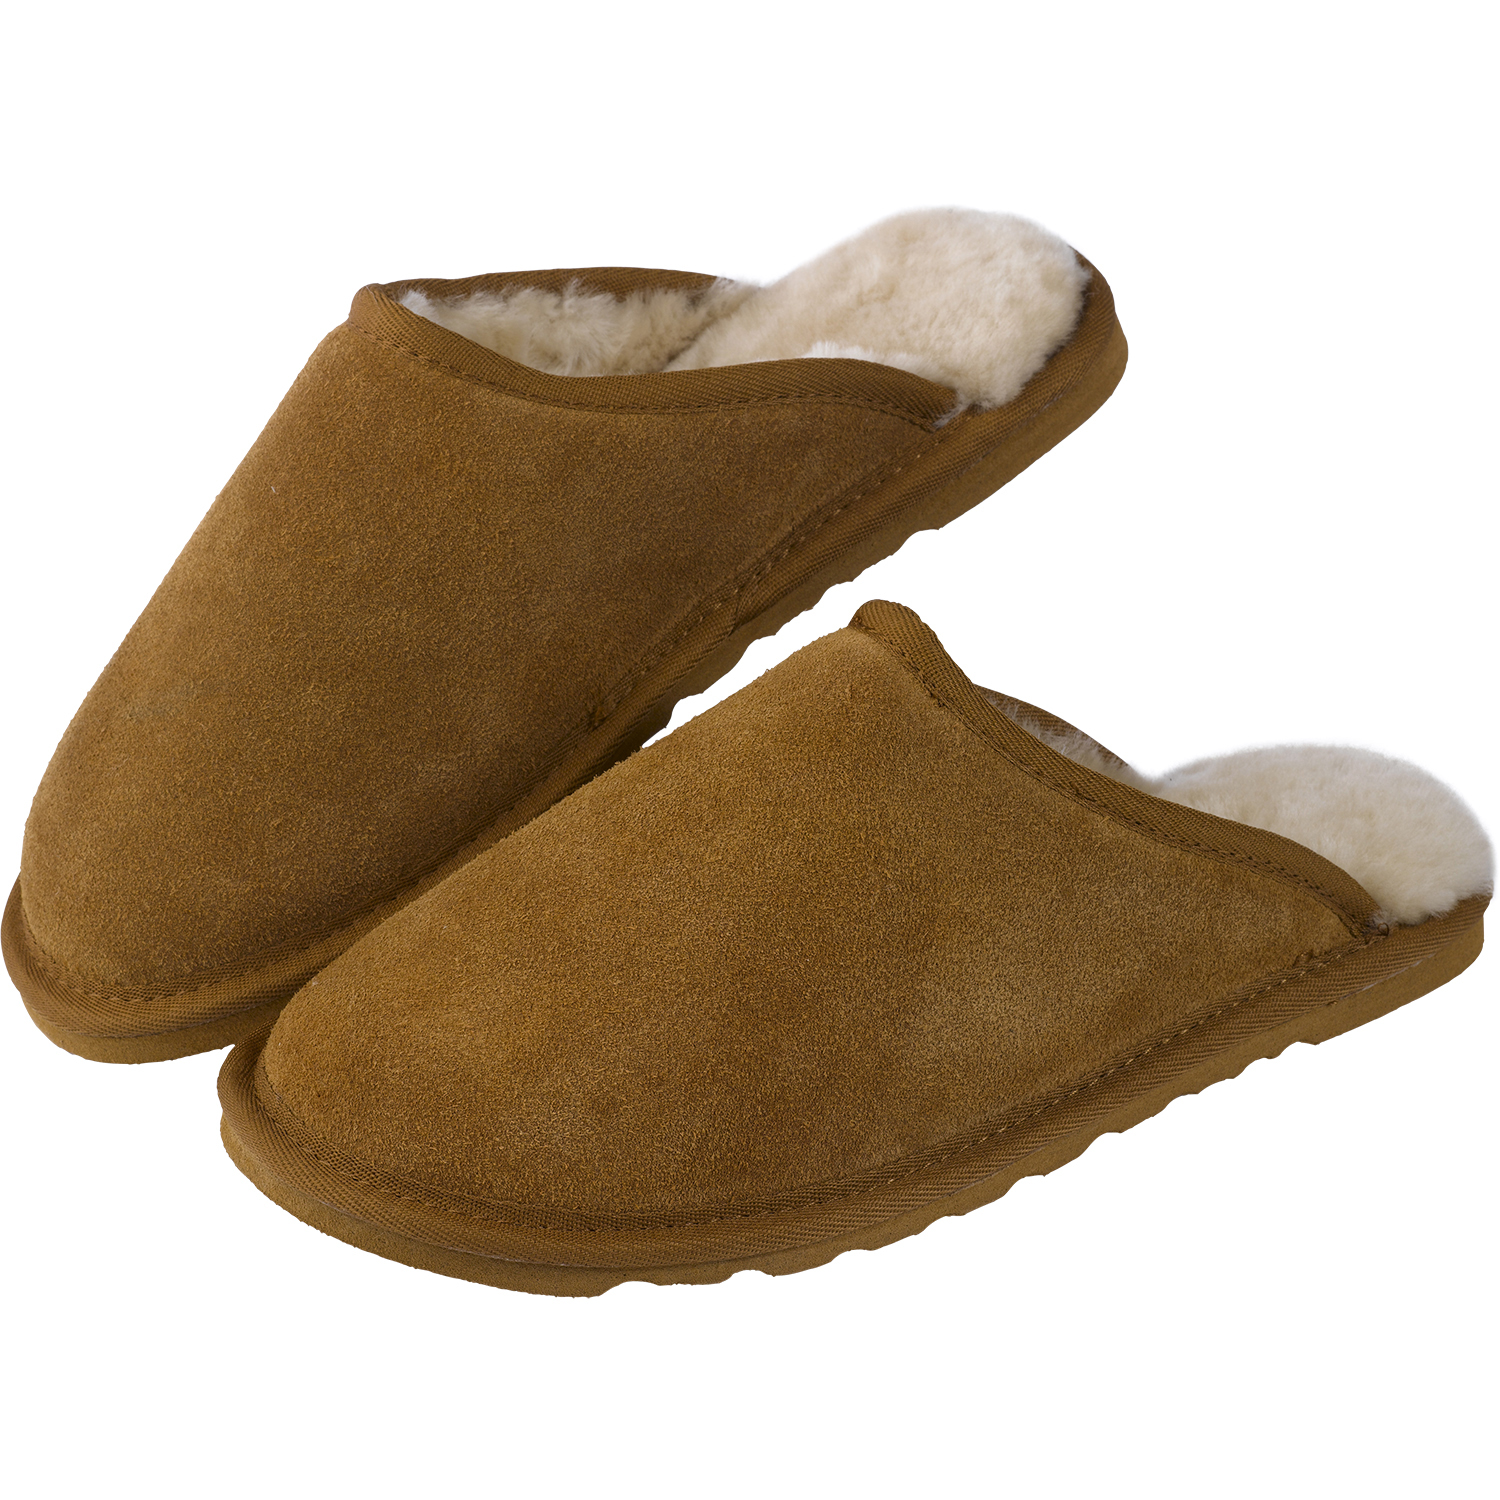 shearling sheepskin slippers with 291037422333 on Ugg Scuffette Ii Slippers Grey 2 also 291037422333 moreover Shearling Sheepskin Newsboy Hat Cognac P 883 also Chestnut Stoneman Mens Sheepskin Boot P47387 furthermore Womens Min onka Moccasins Sheepskin Hardsole Moccasin Slippers Tan.